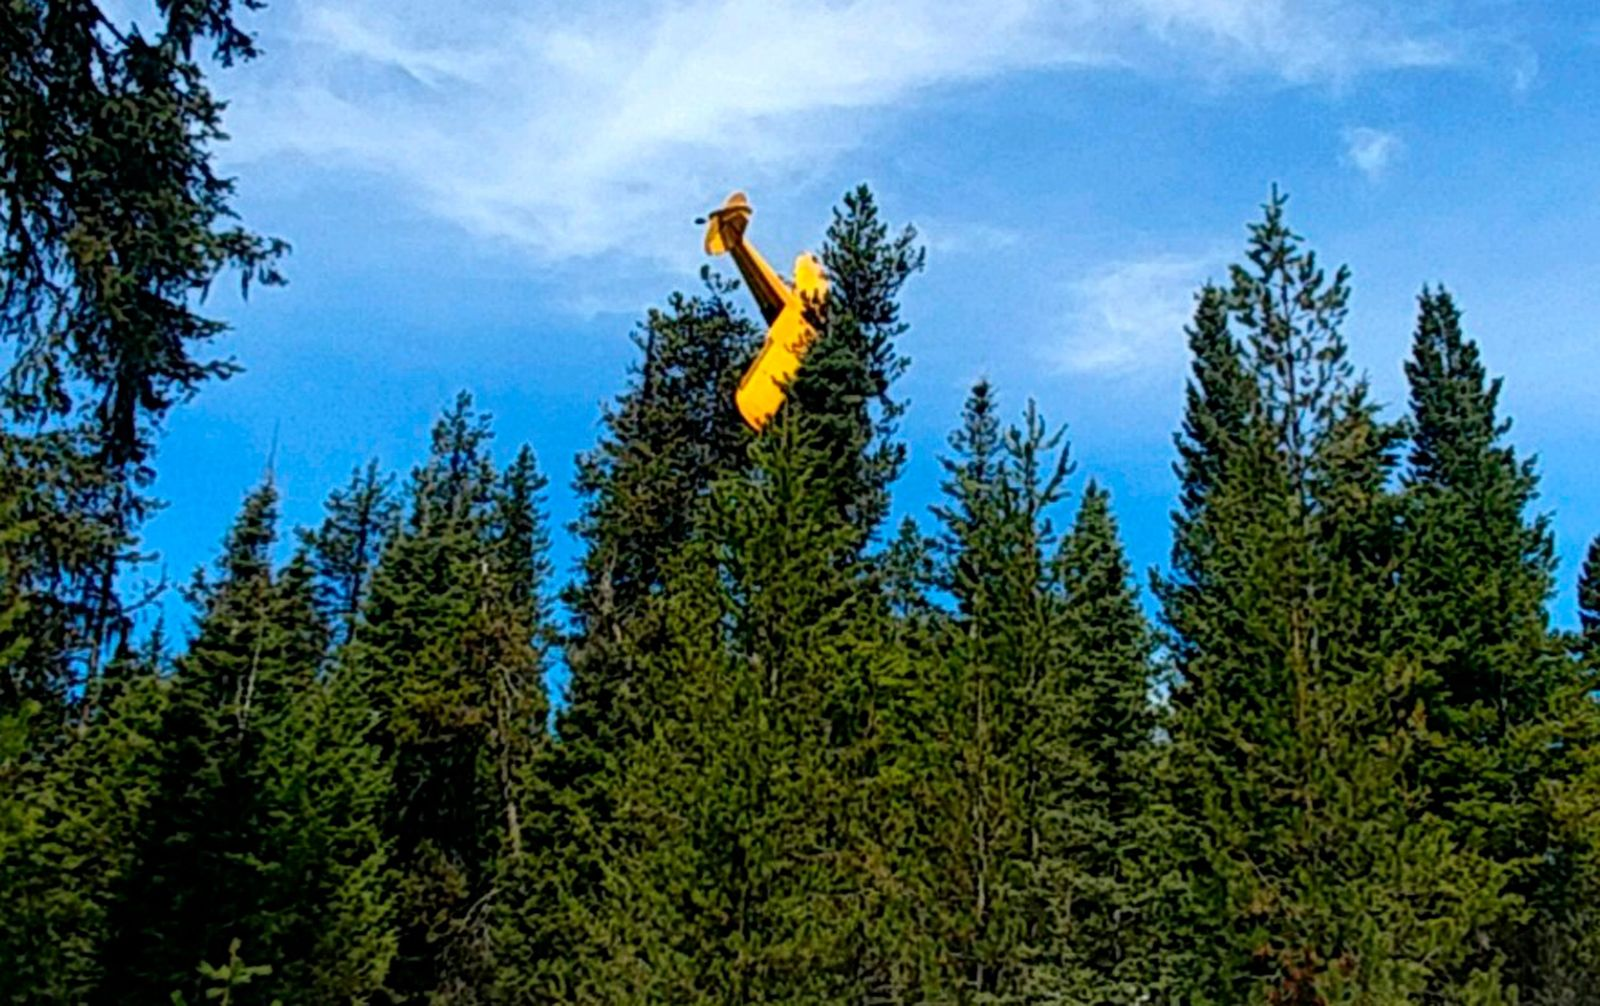 This undated photo provided by the Valley County Sheriff's Office shows a small plane where it came to rest at the top of a tree near the resort town of McCall, Idaho. (Undersheriff Jason Speer/Valley County Sheriff's Office via AP)